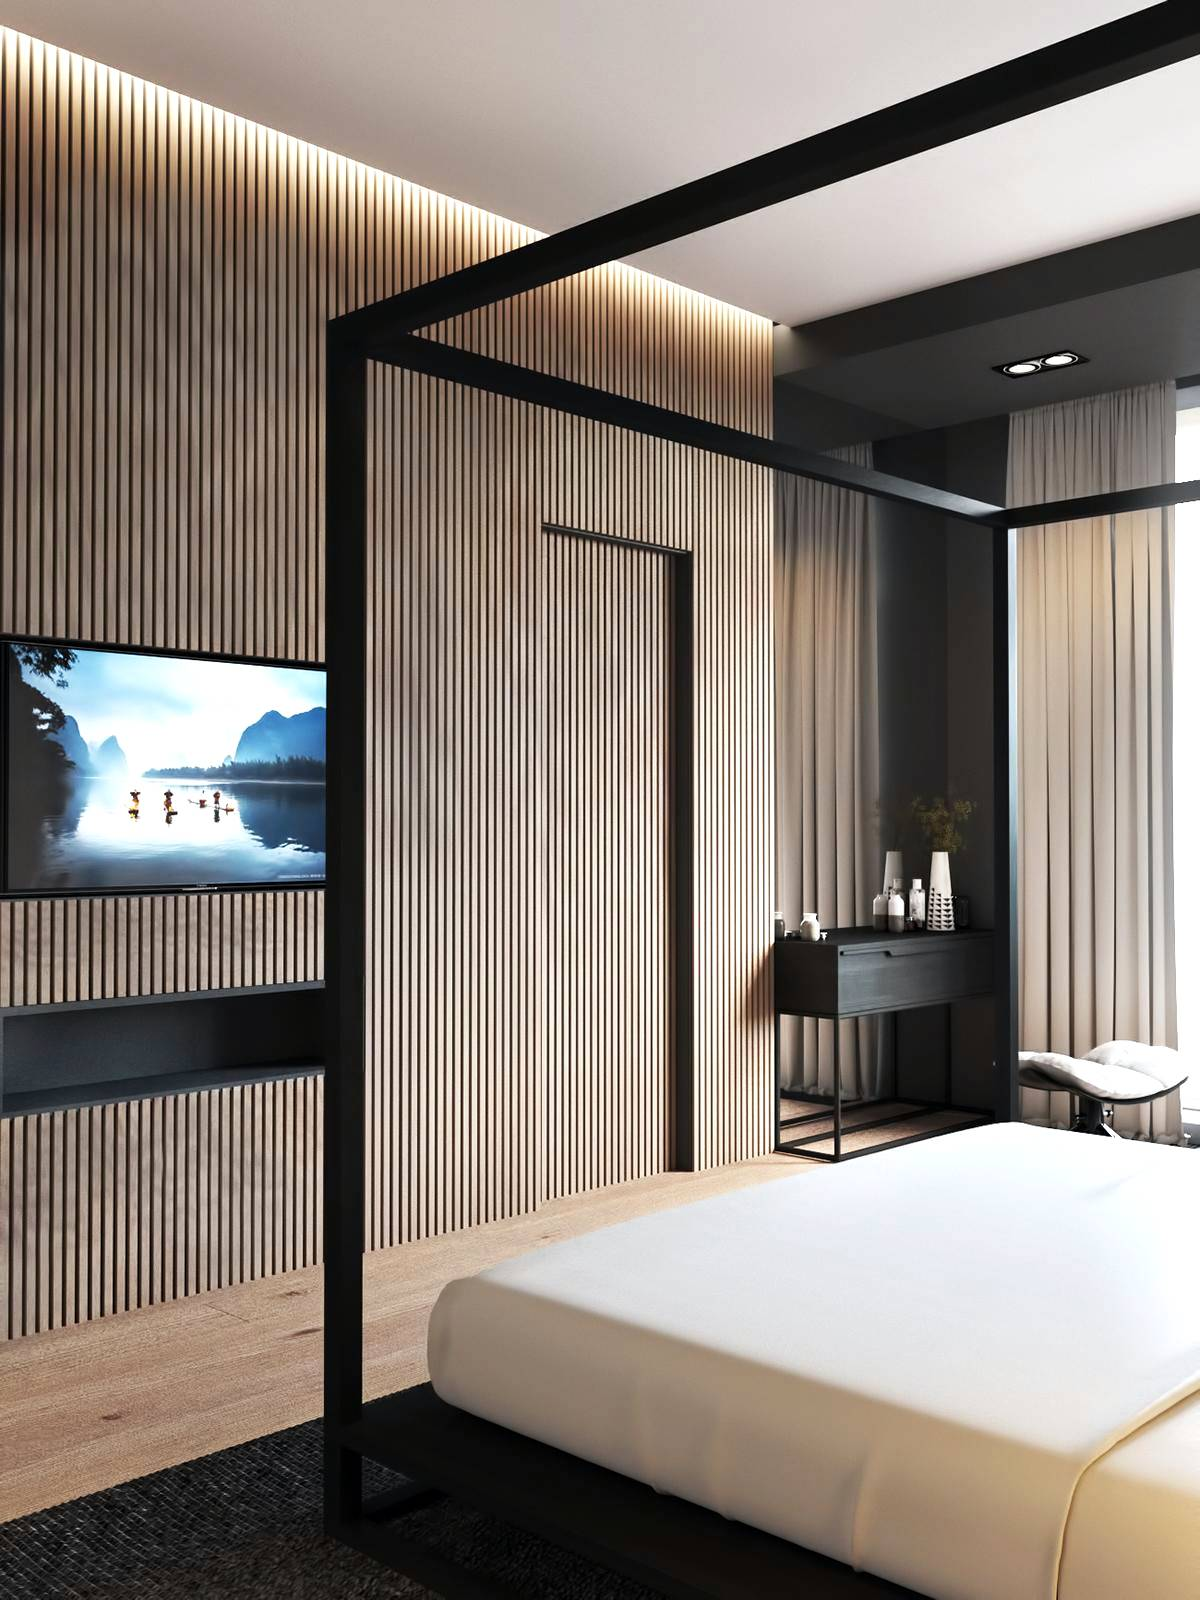 How to Decorate Bedroom with 'Luxury' Bedroom Wall and ...